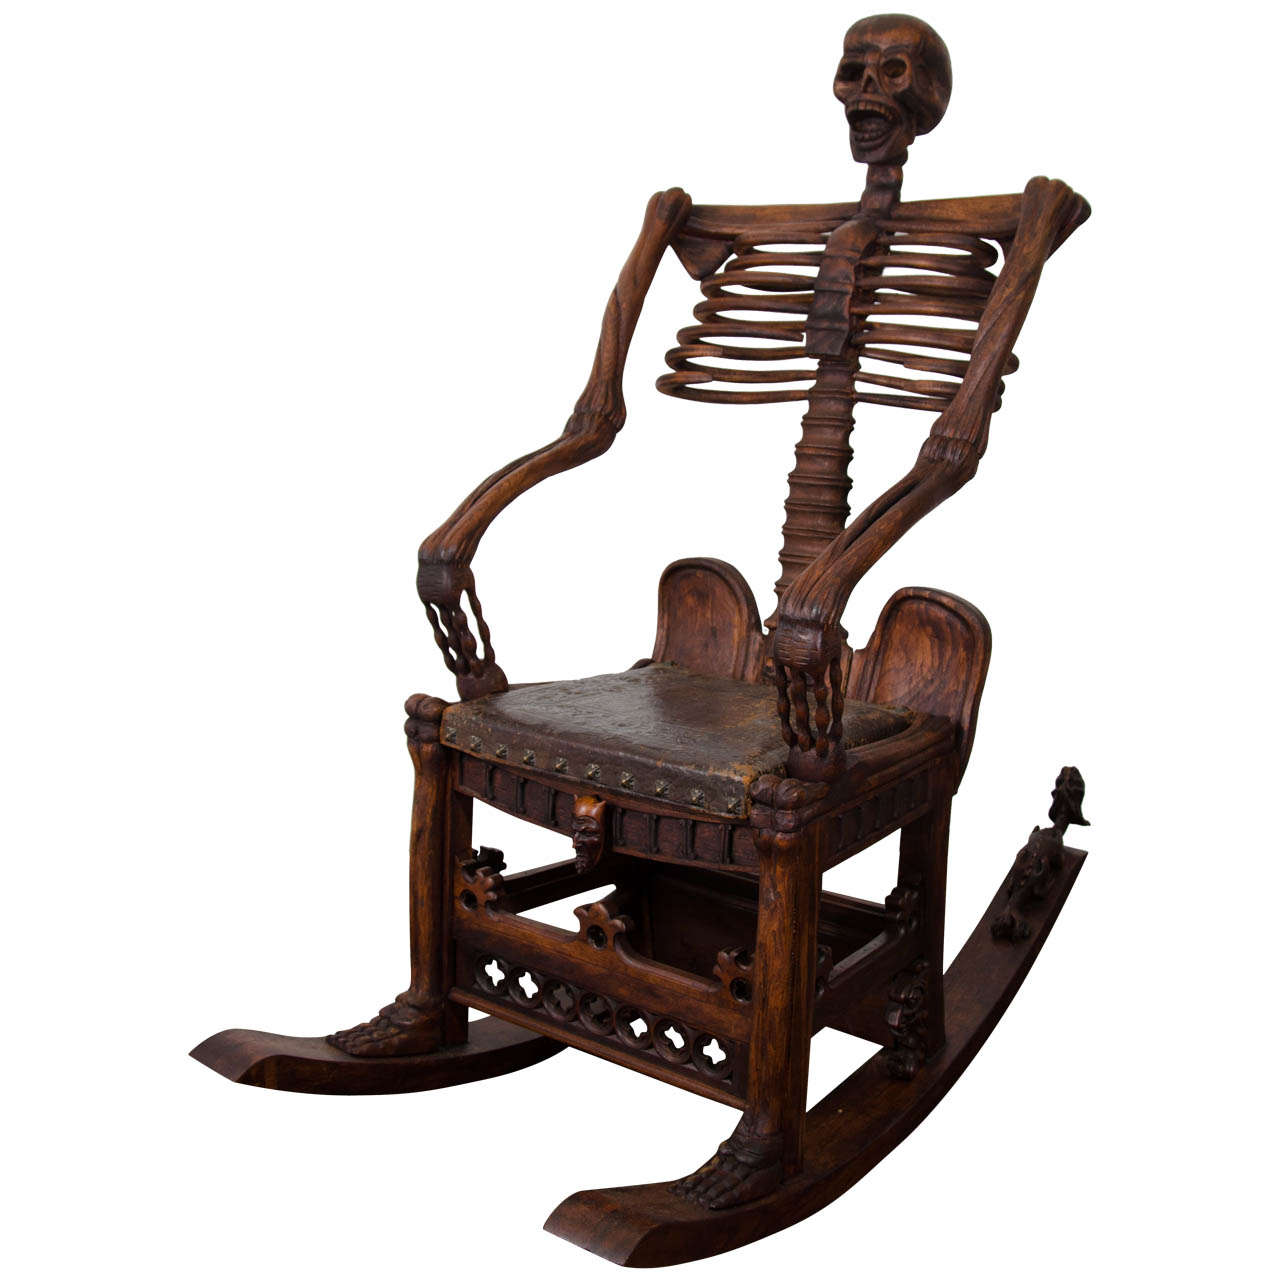 An Antique Hand-Carved Skeleton Rocking Chair 1 - An Antique Hand-Carved Skeleton Rocking Chair At 1stdibs